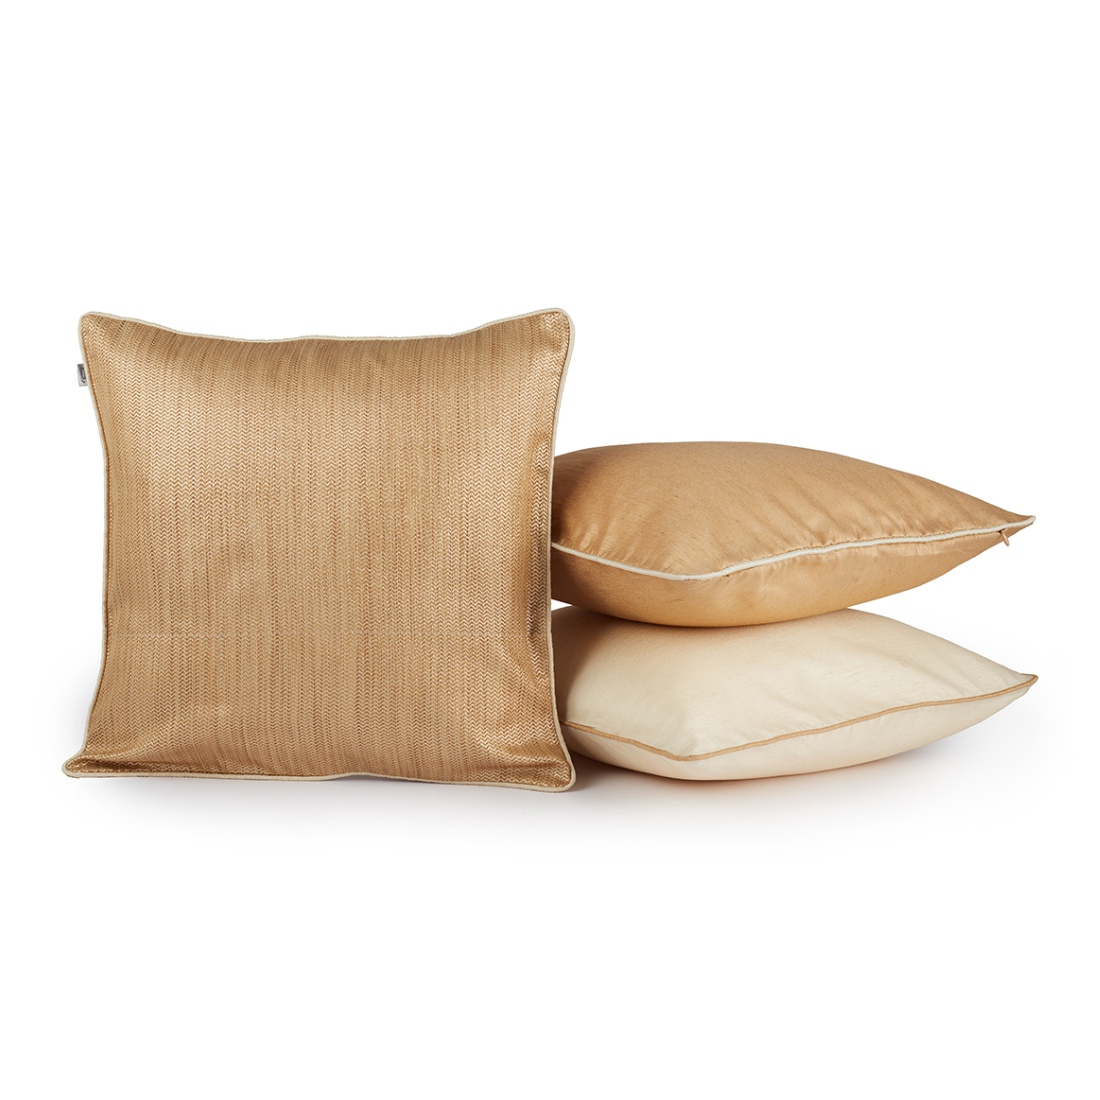 Fiesta Set Of 3 Cushion Covers Beige & Cream Polyester Cushion Cover Sets in Beige & Cream Colour by Living Essence